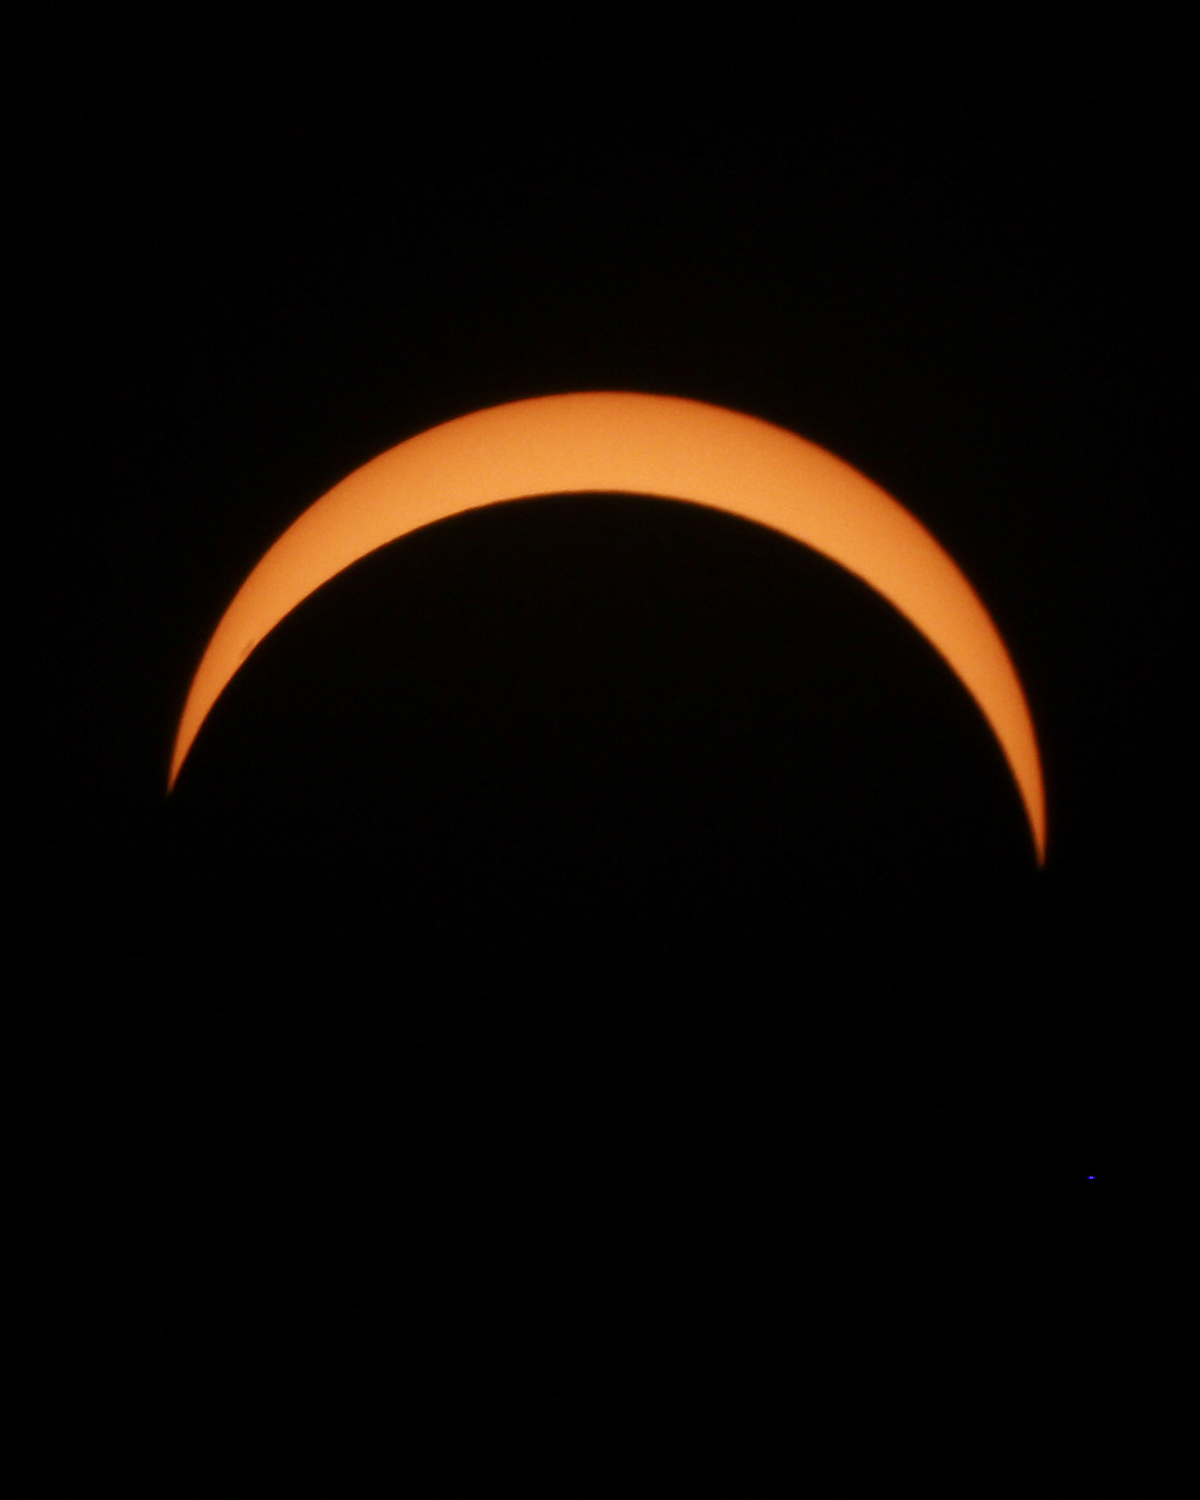 Using a special solar filter over the camera lens, the partial solar eclipse is seen at its peek at about 2:44 p.m. on August 21, 2017, on the Richard Bland College of William and Mary campus in Prince George, Va. [Scott P. Yates/progress-index.com]